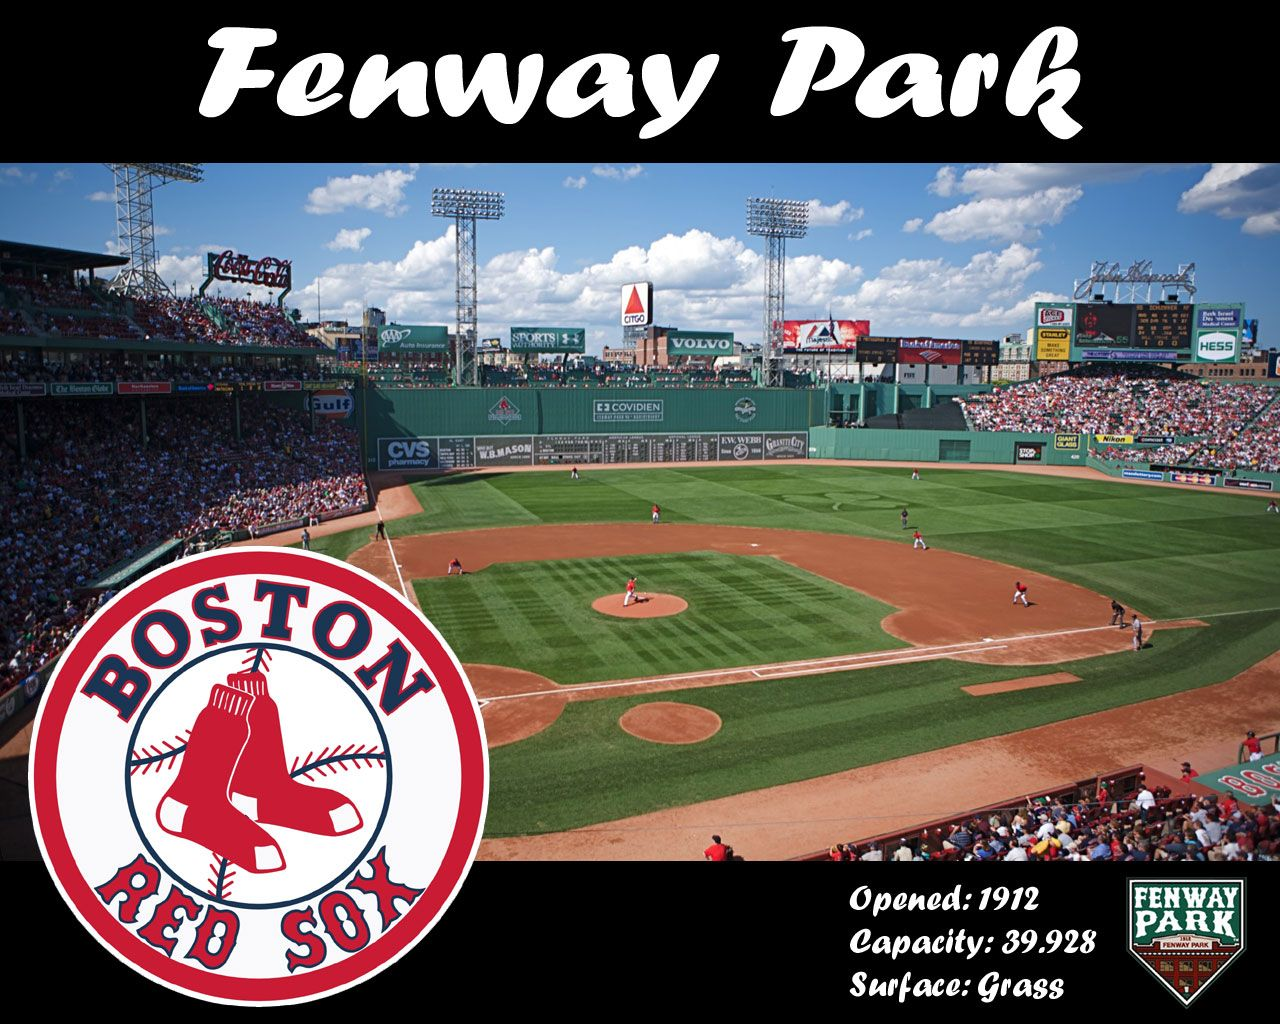 Fenway Park Is A Baseball Park Near Kenmore Square In Boston Massachusetts Located At 4 Yawkey Way It Has Serve Fenway Park Baseball Wallpaper Baseball Park